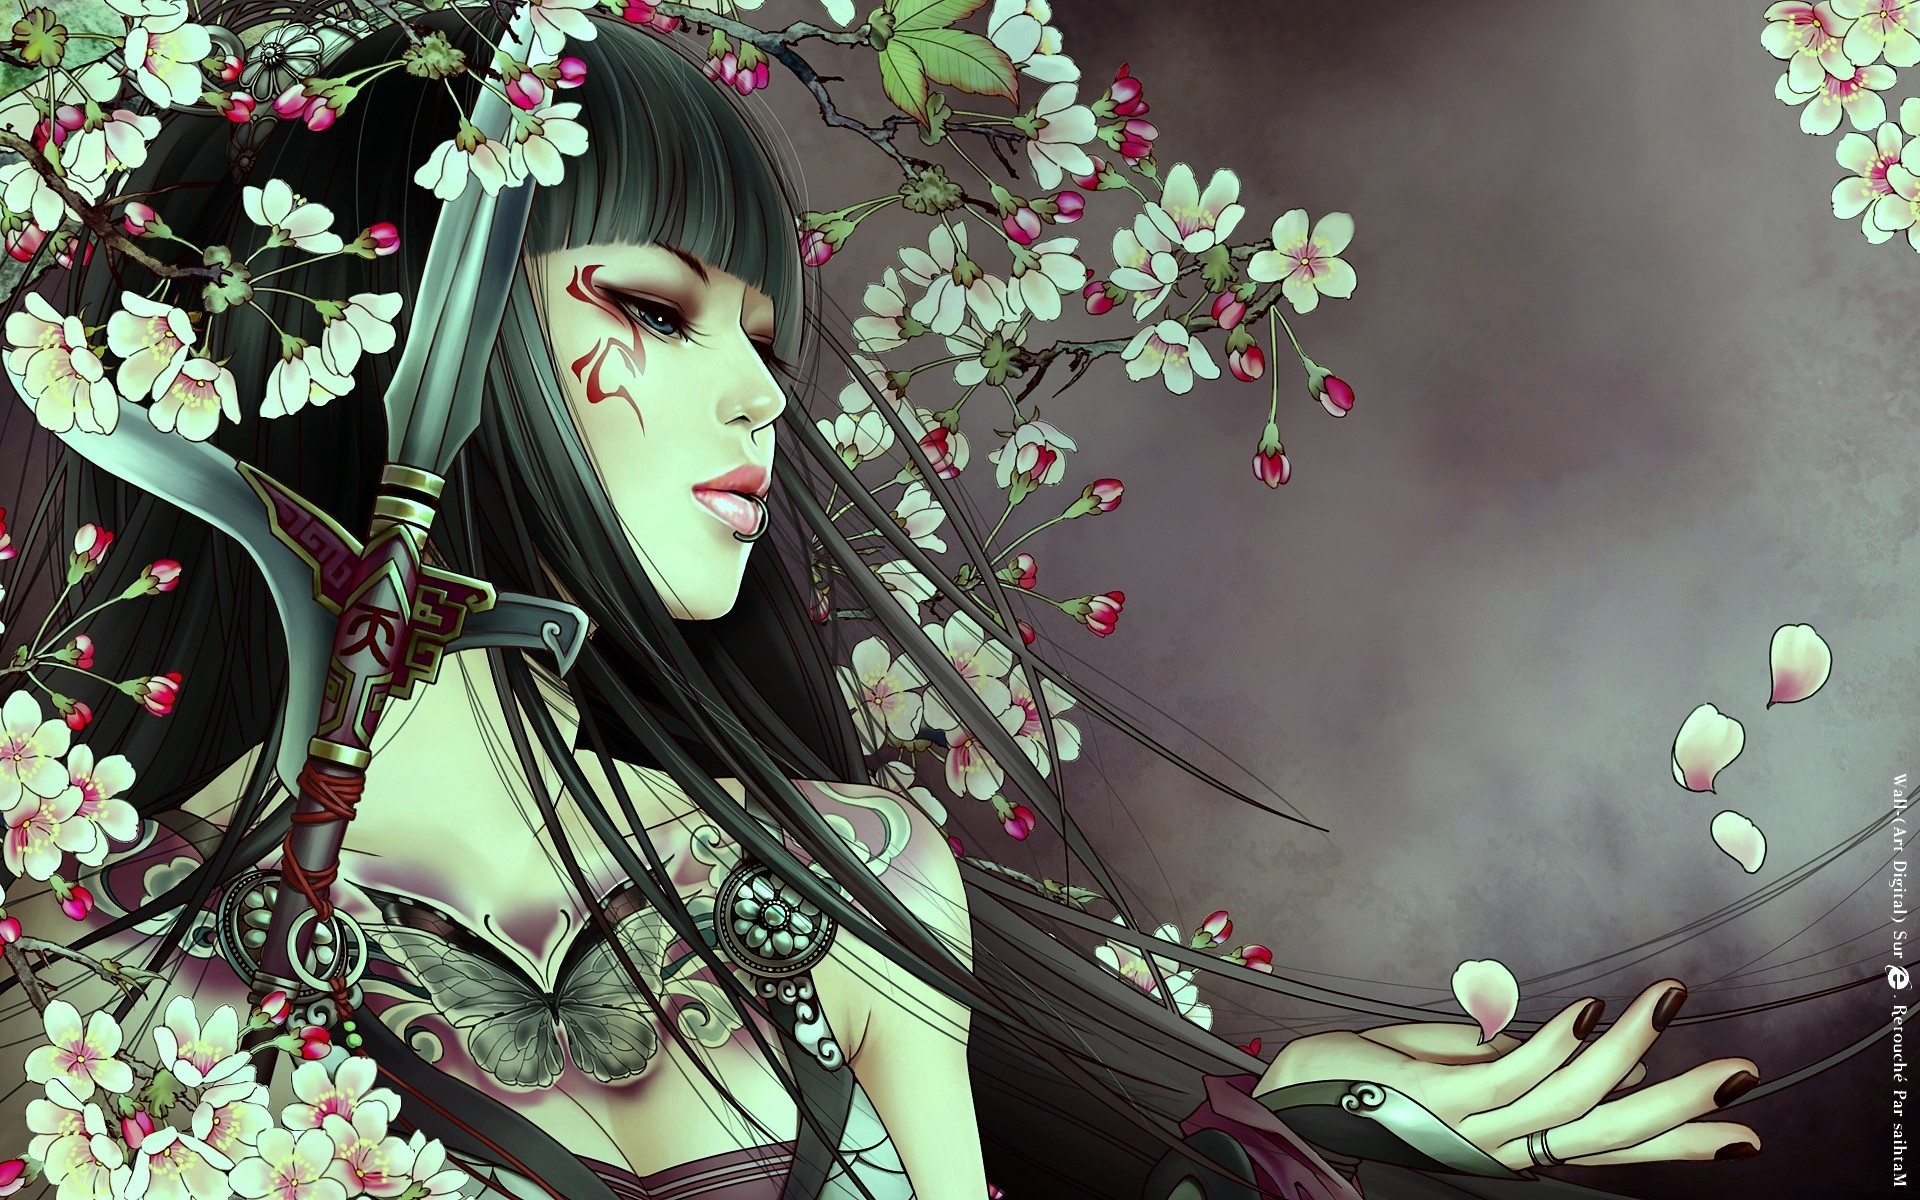 37 awesome anime wallpapers download free awesome hd - Anime computer wallpaper ...